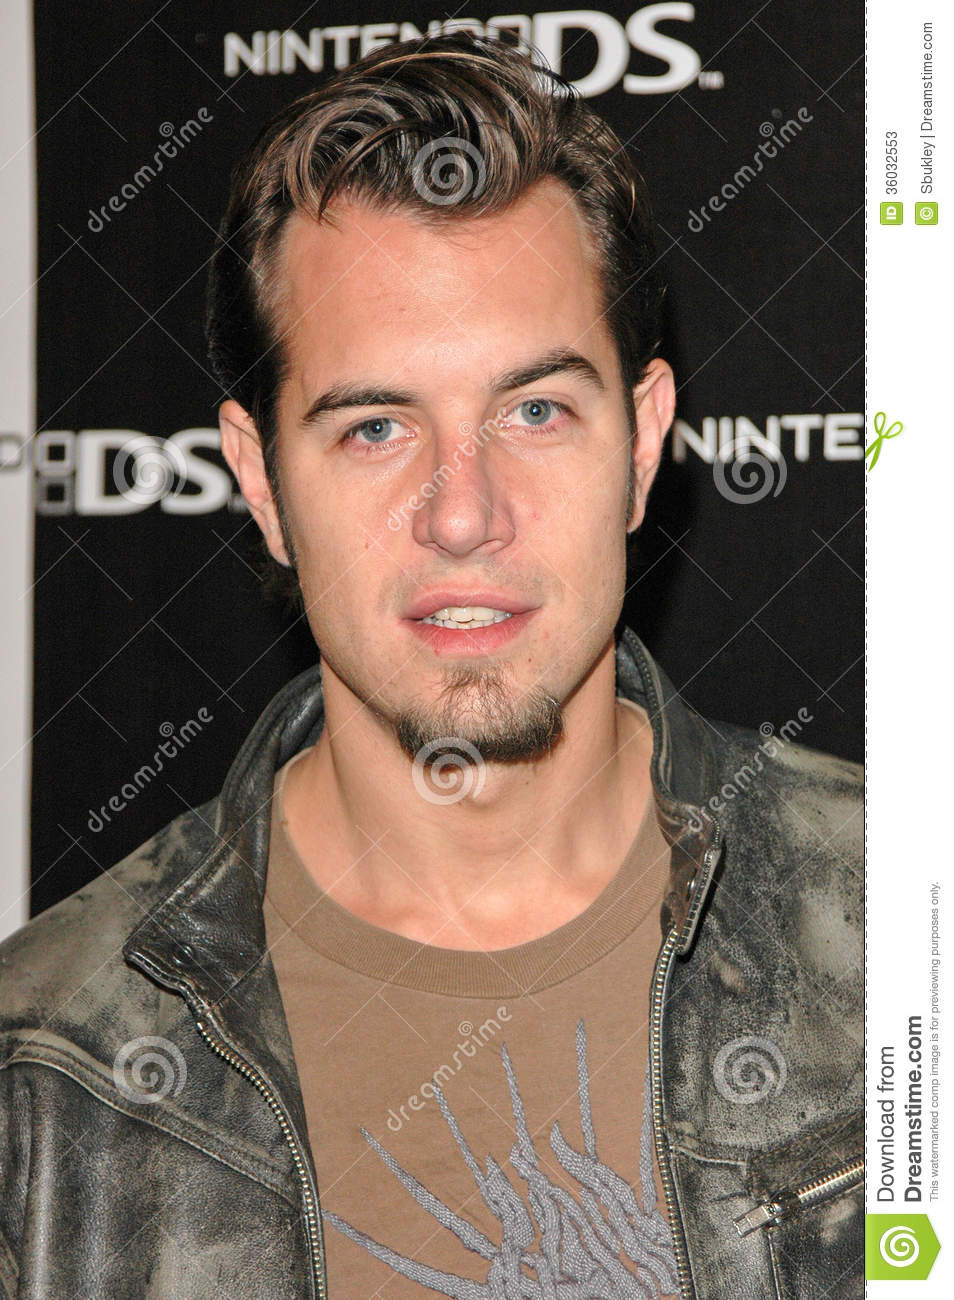 Nick Hexum 2014